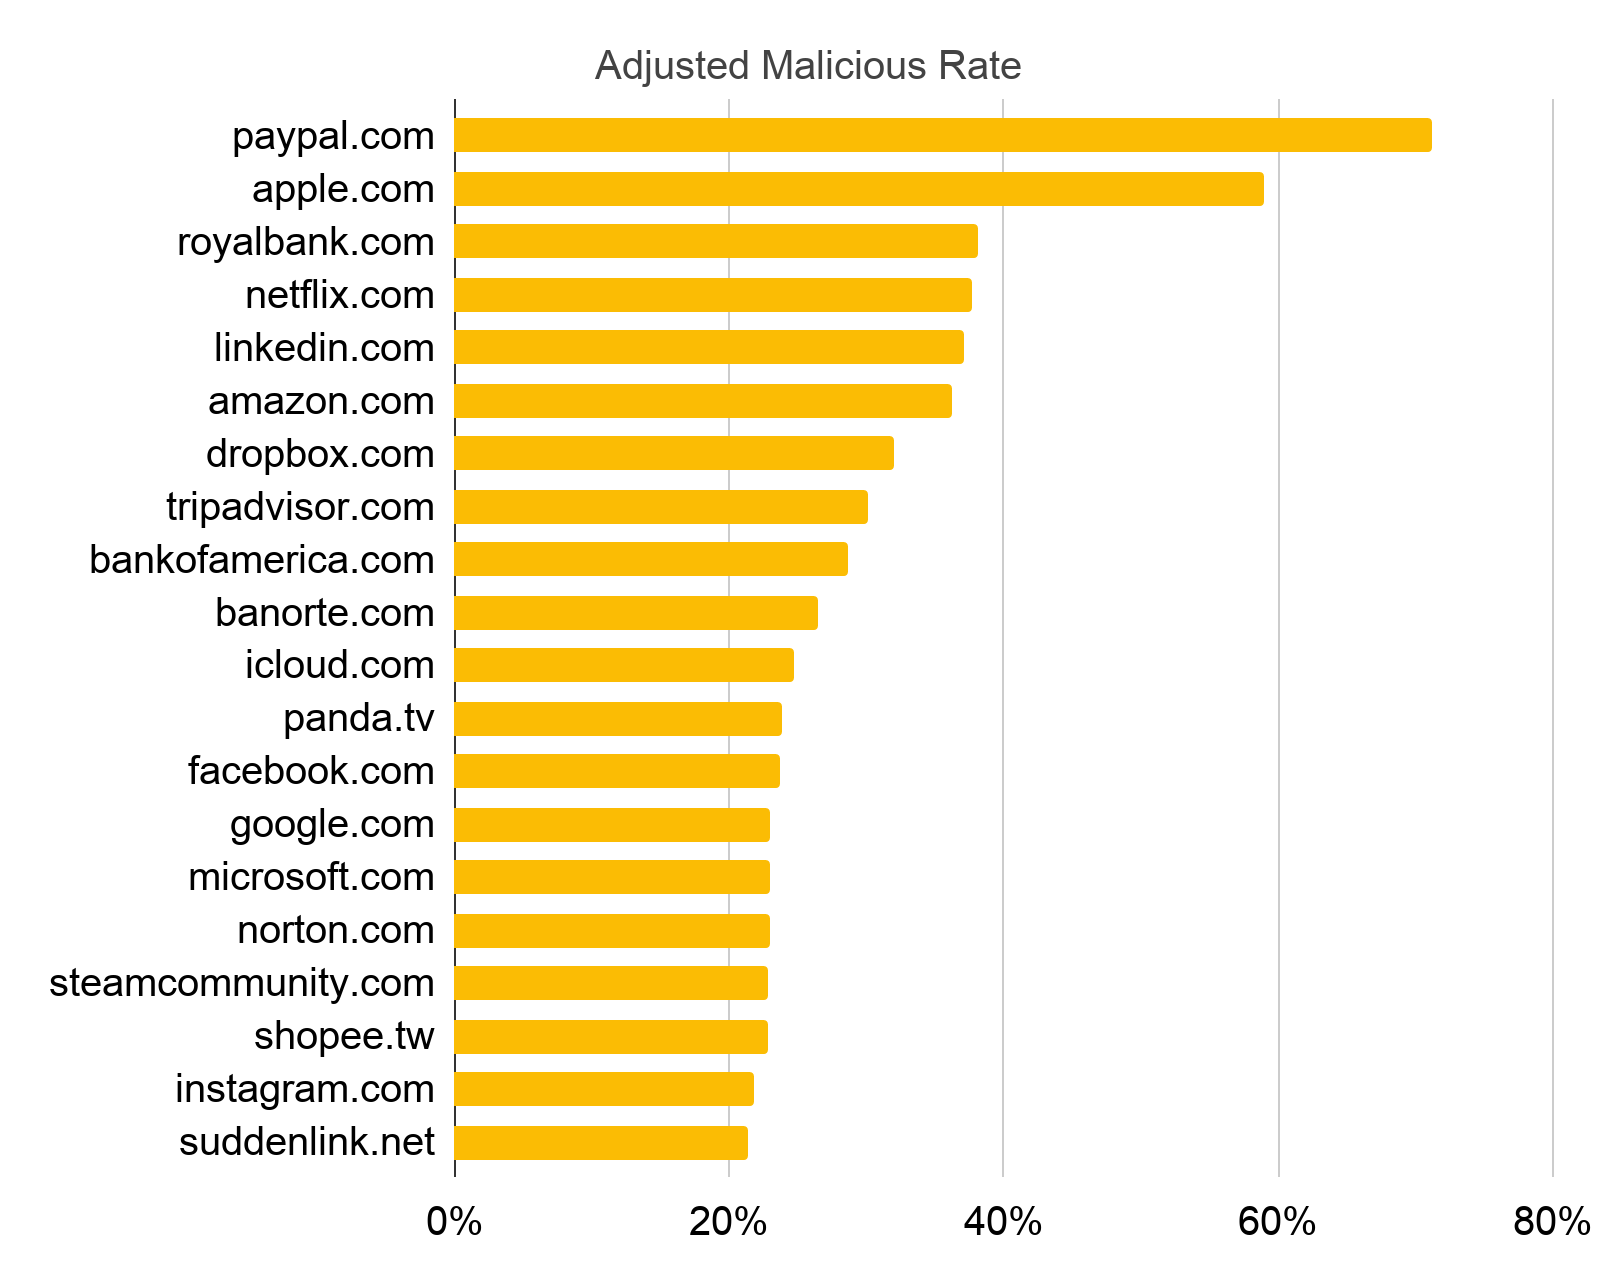 "This graph ranks the Top 20 most abused domains, using an ""adjusted malicious rate"" metric to determine which domains are the favored targets of the practice of cybersquatting."